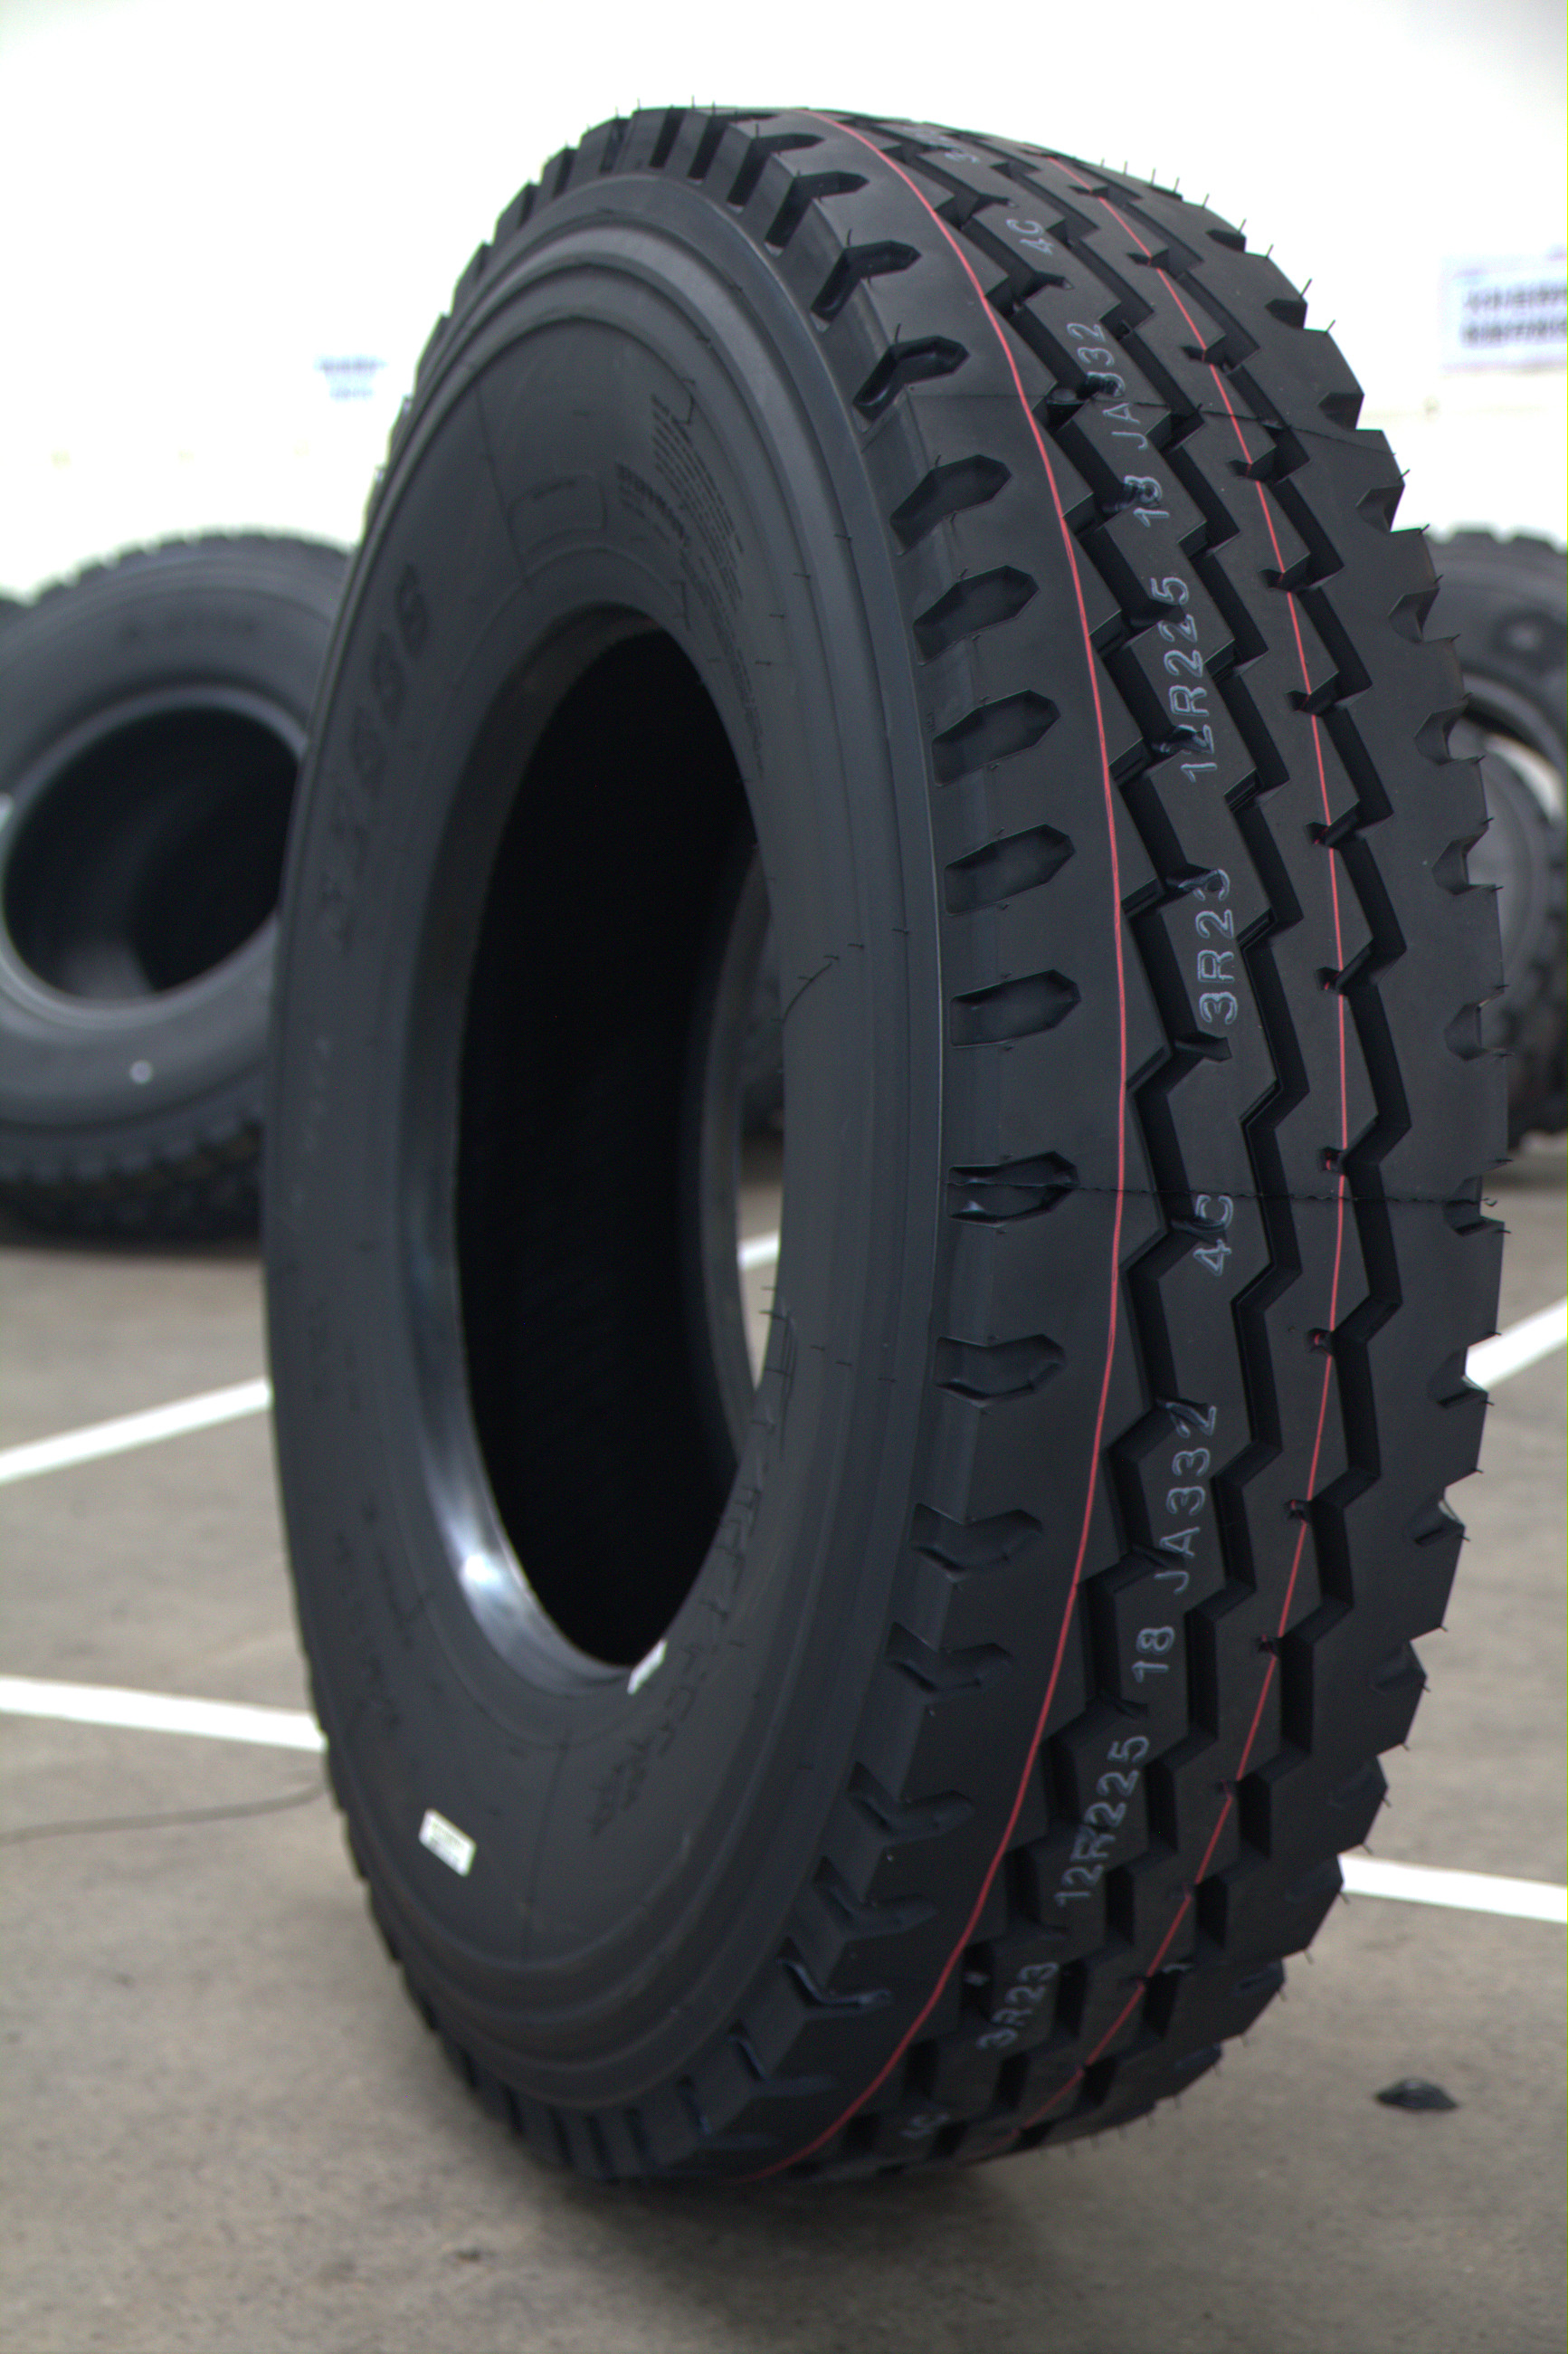 11R22.5 11R24.5 315/80R22.5 12R22.5 13R22.5 CHINESE BRANDS ZERMATT HIGH QUALITY NEW TRUCK TYRES PRICE RADIAL